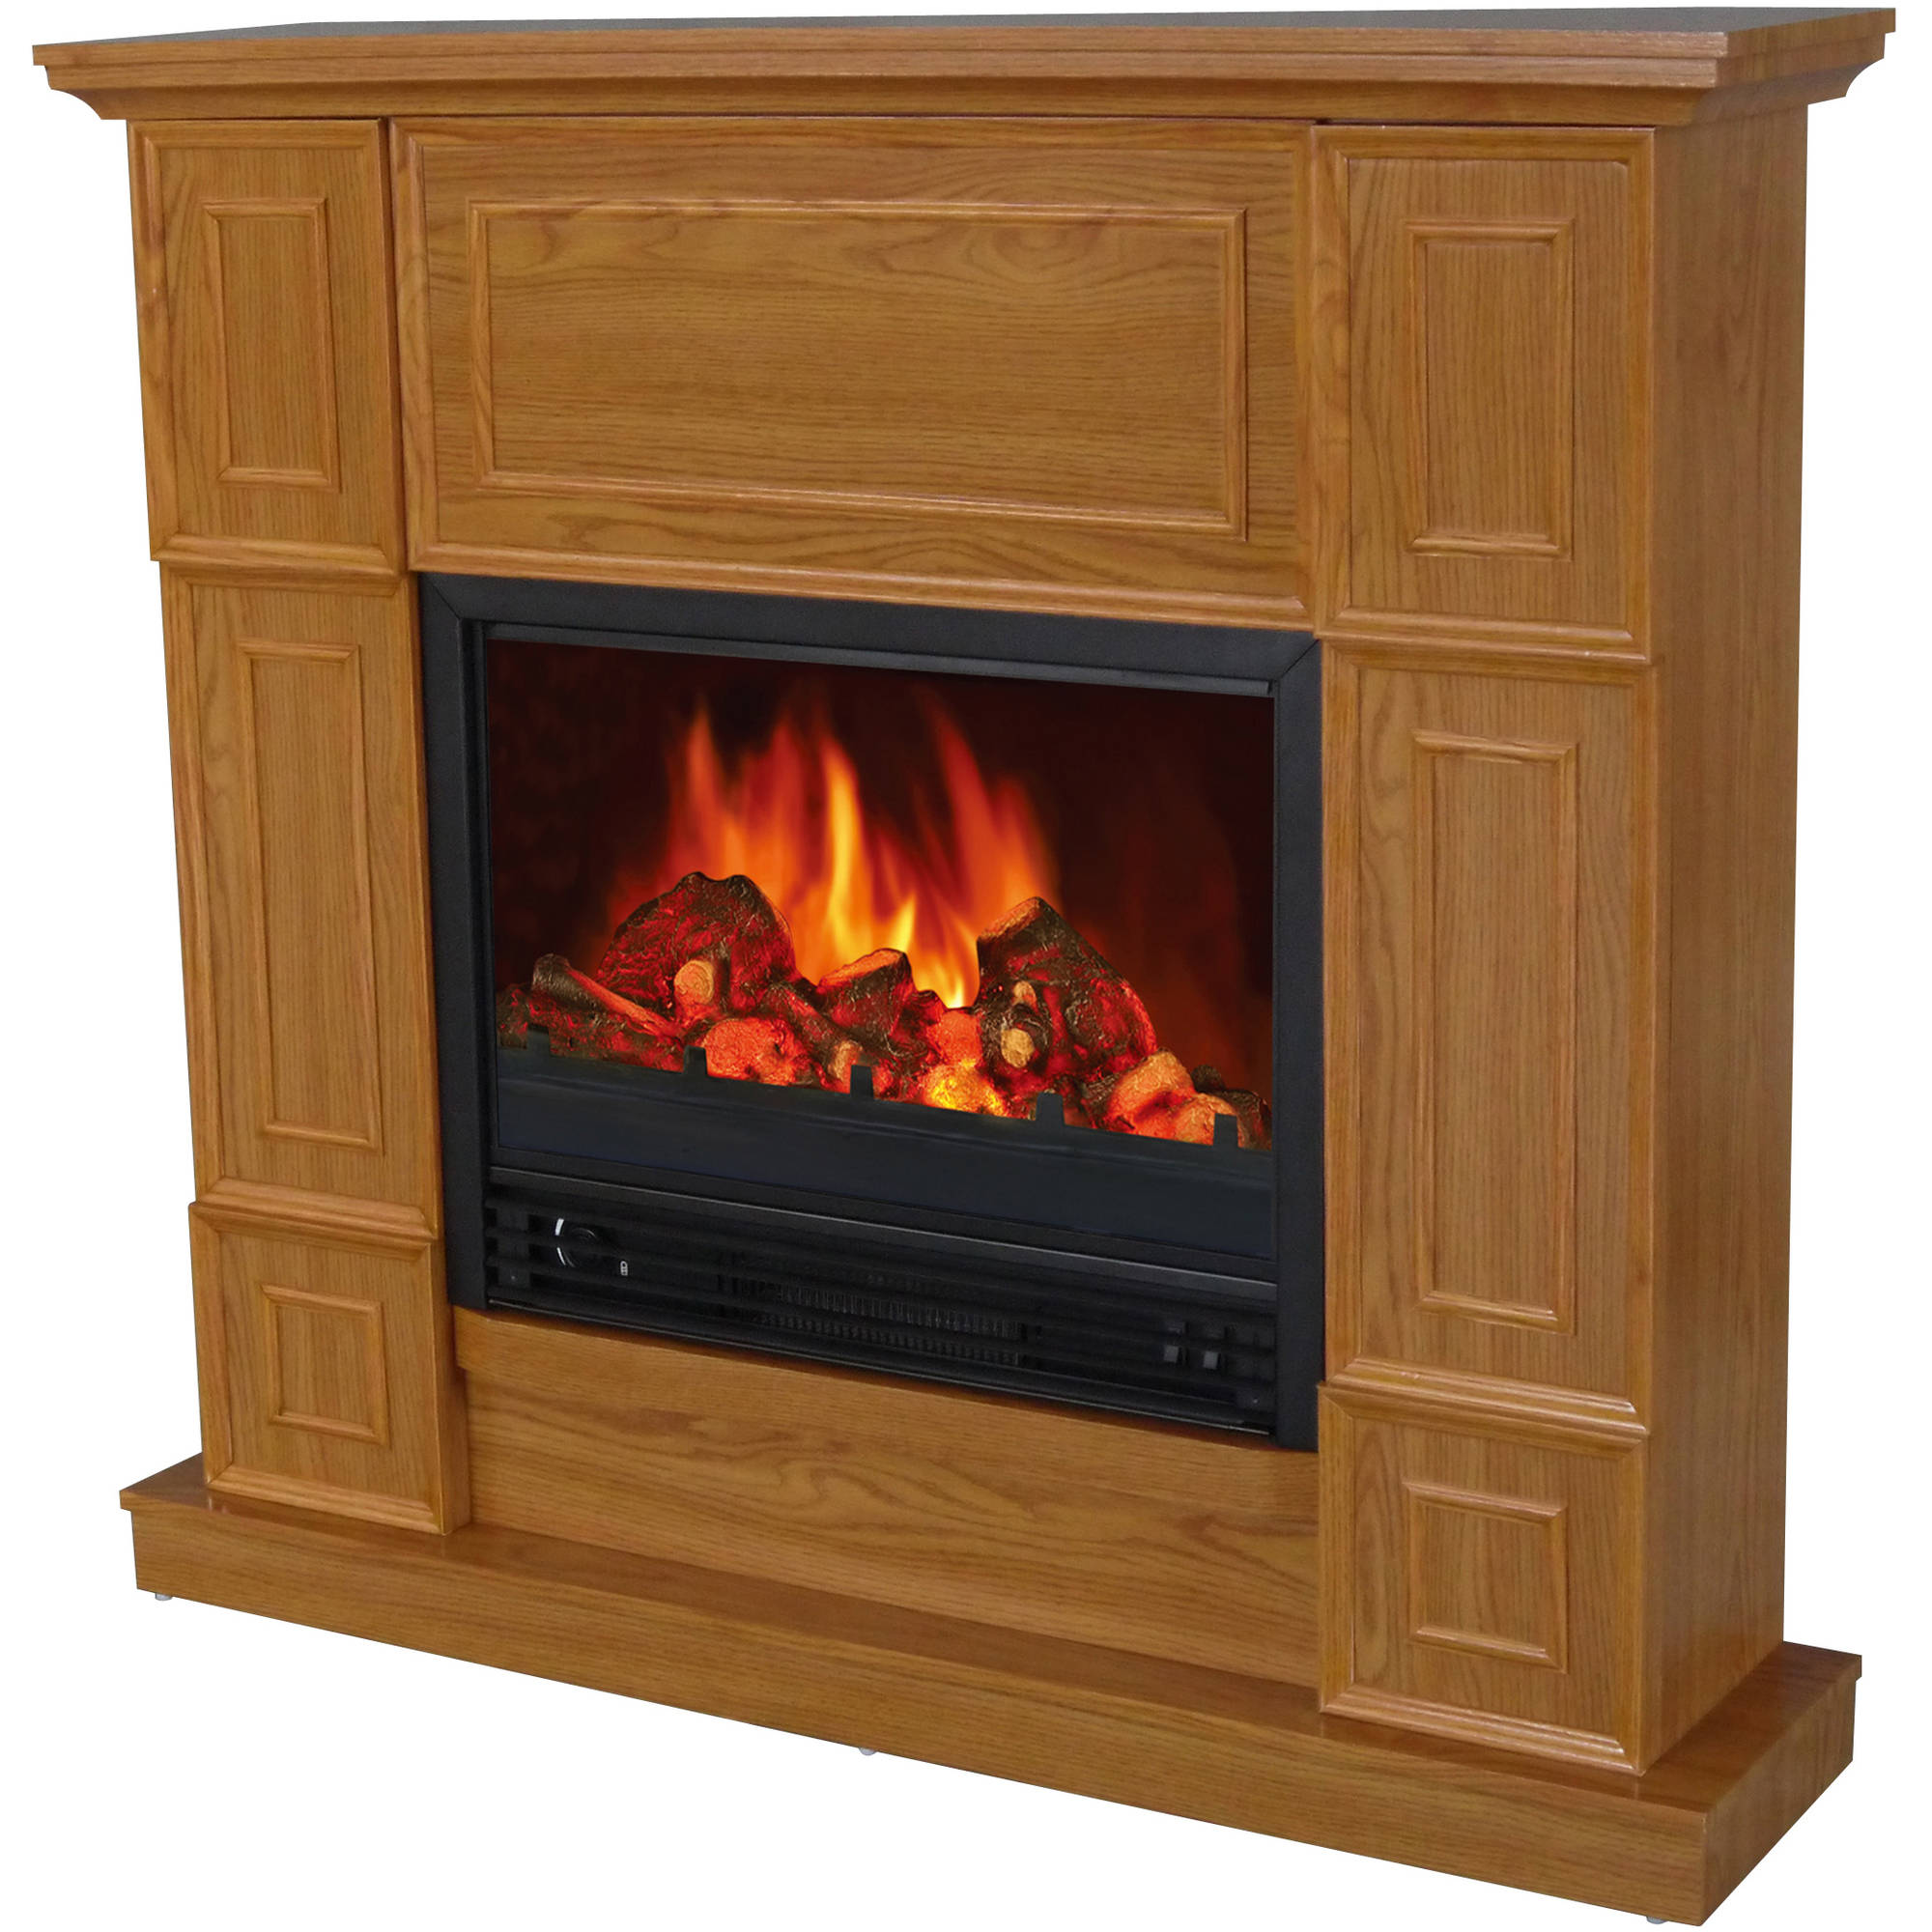 ip com infrared fireplace digital with mantle walmart cherry